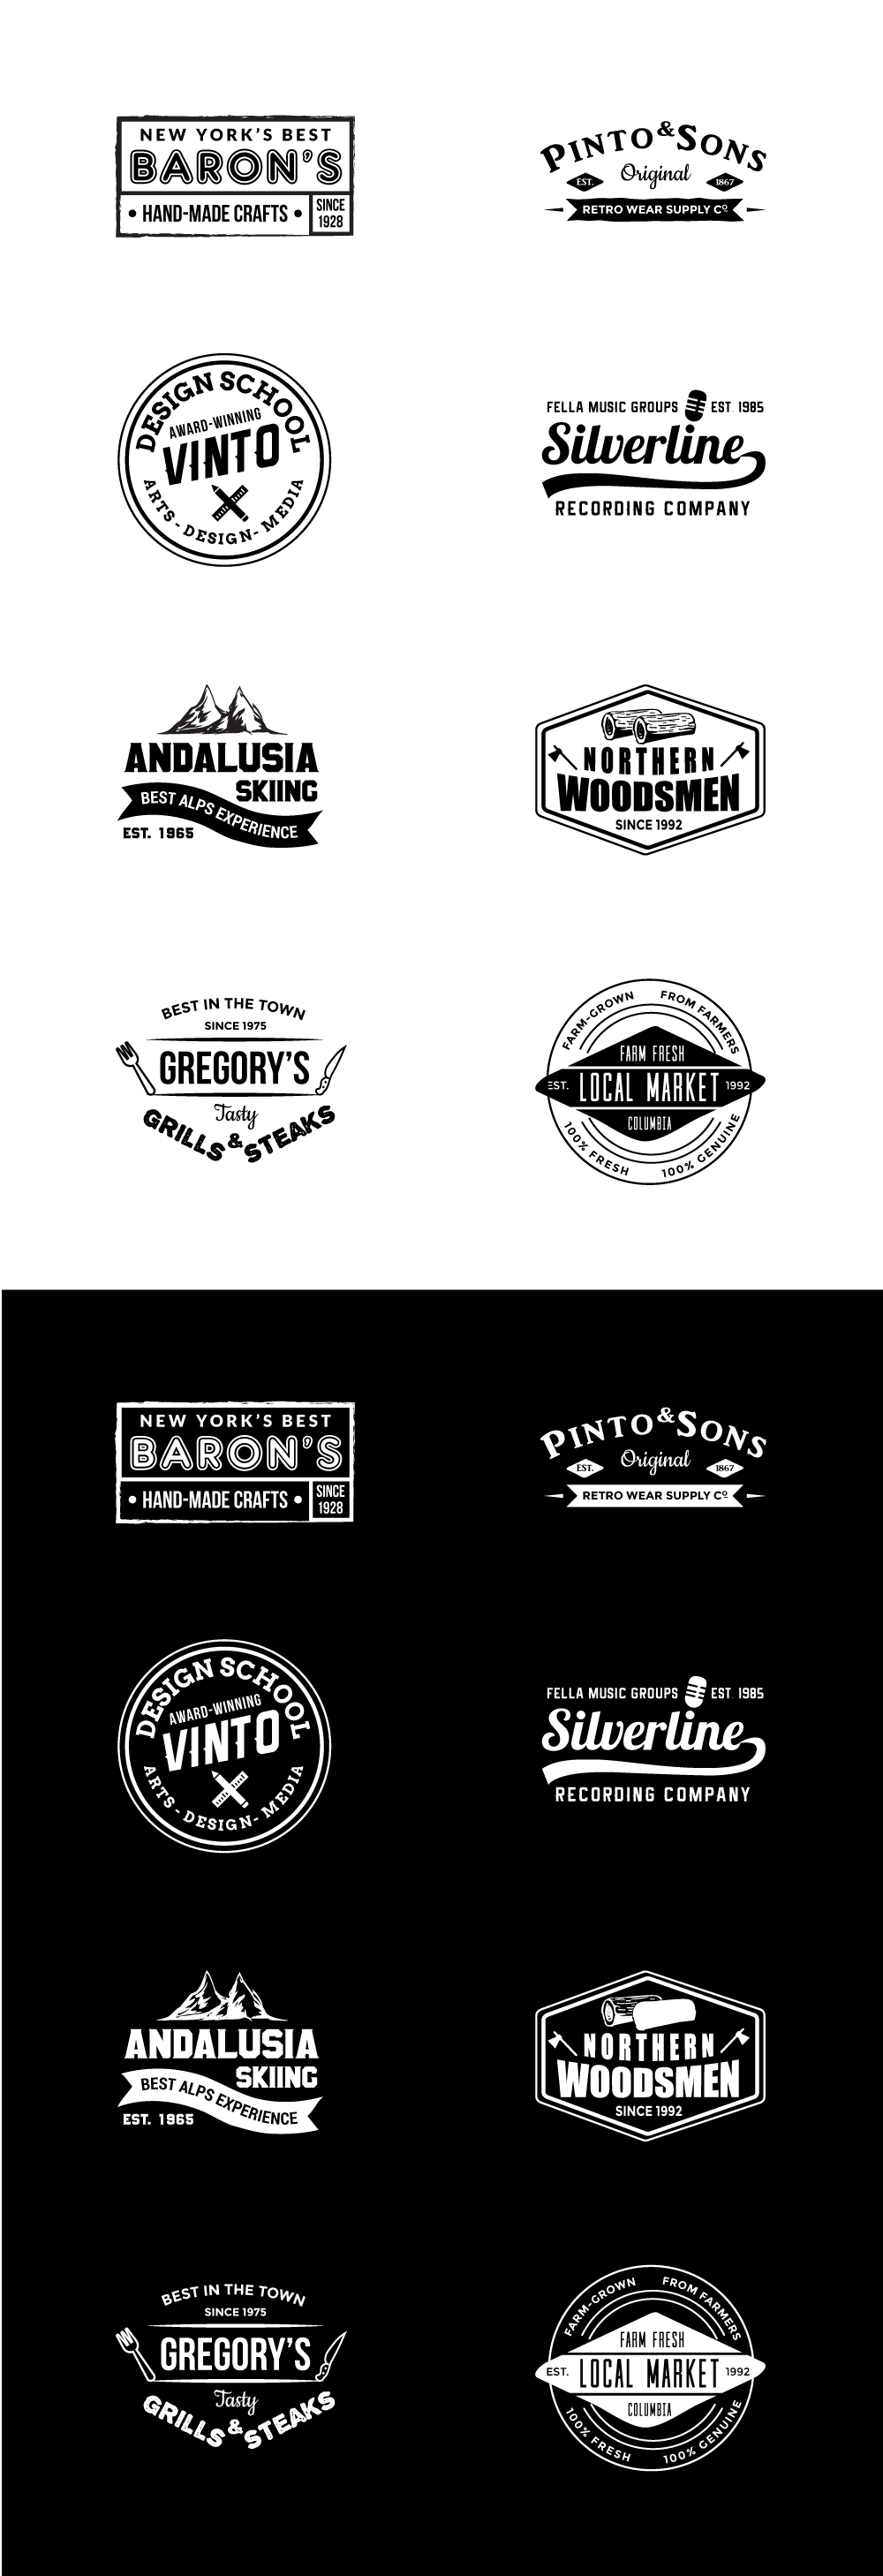 perfect free vintage logo mockup templates pack vol 1 responsive joomla and wordpress themes. Black Bedroom Furniture Sets. Home Design Ideas